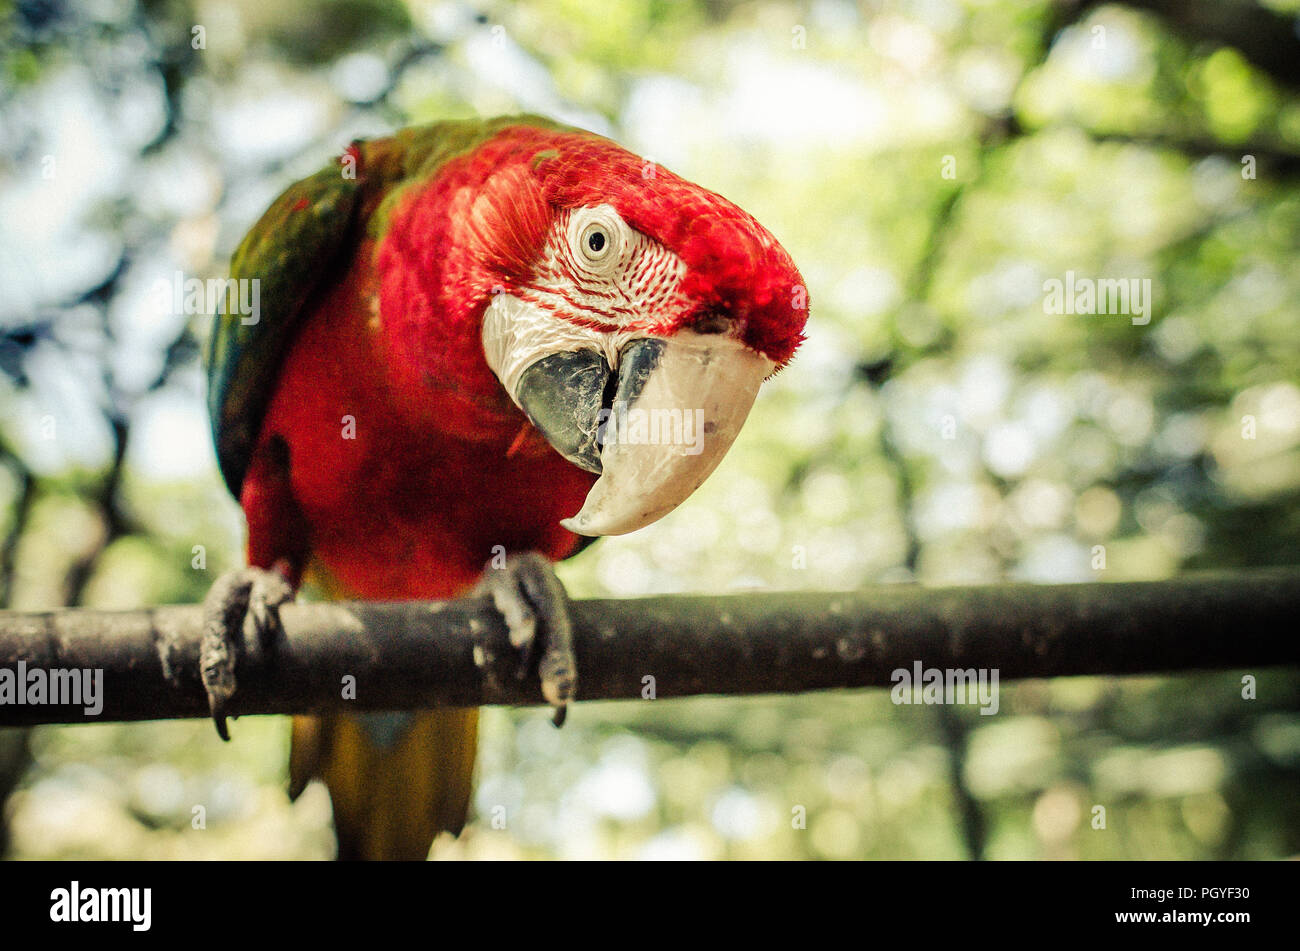 Mauritius Red Parrot Stock Photo